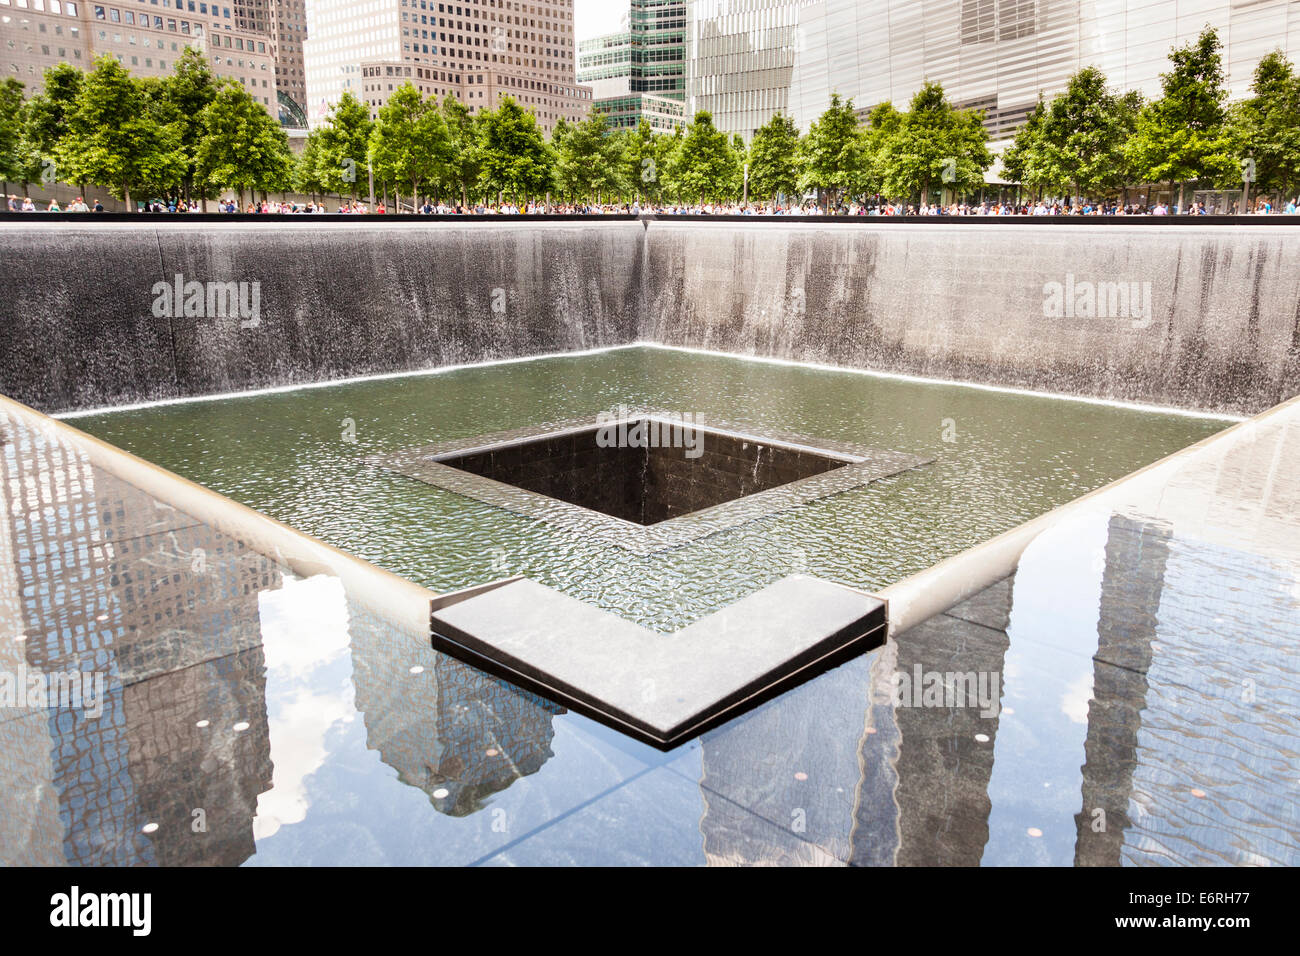 One of the two waterfalls at National September 11 Memorial, World Trade Center, Manhattan, New York City, New York, - Stock Image